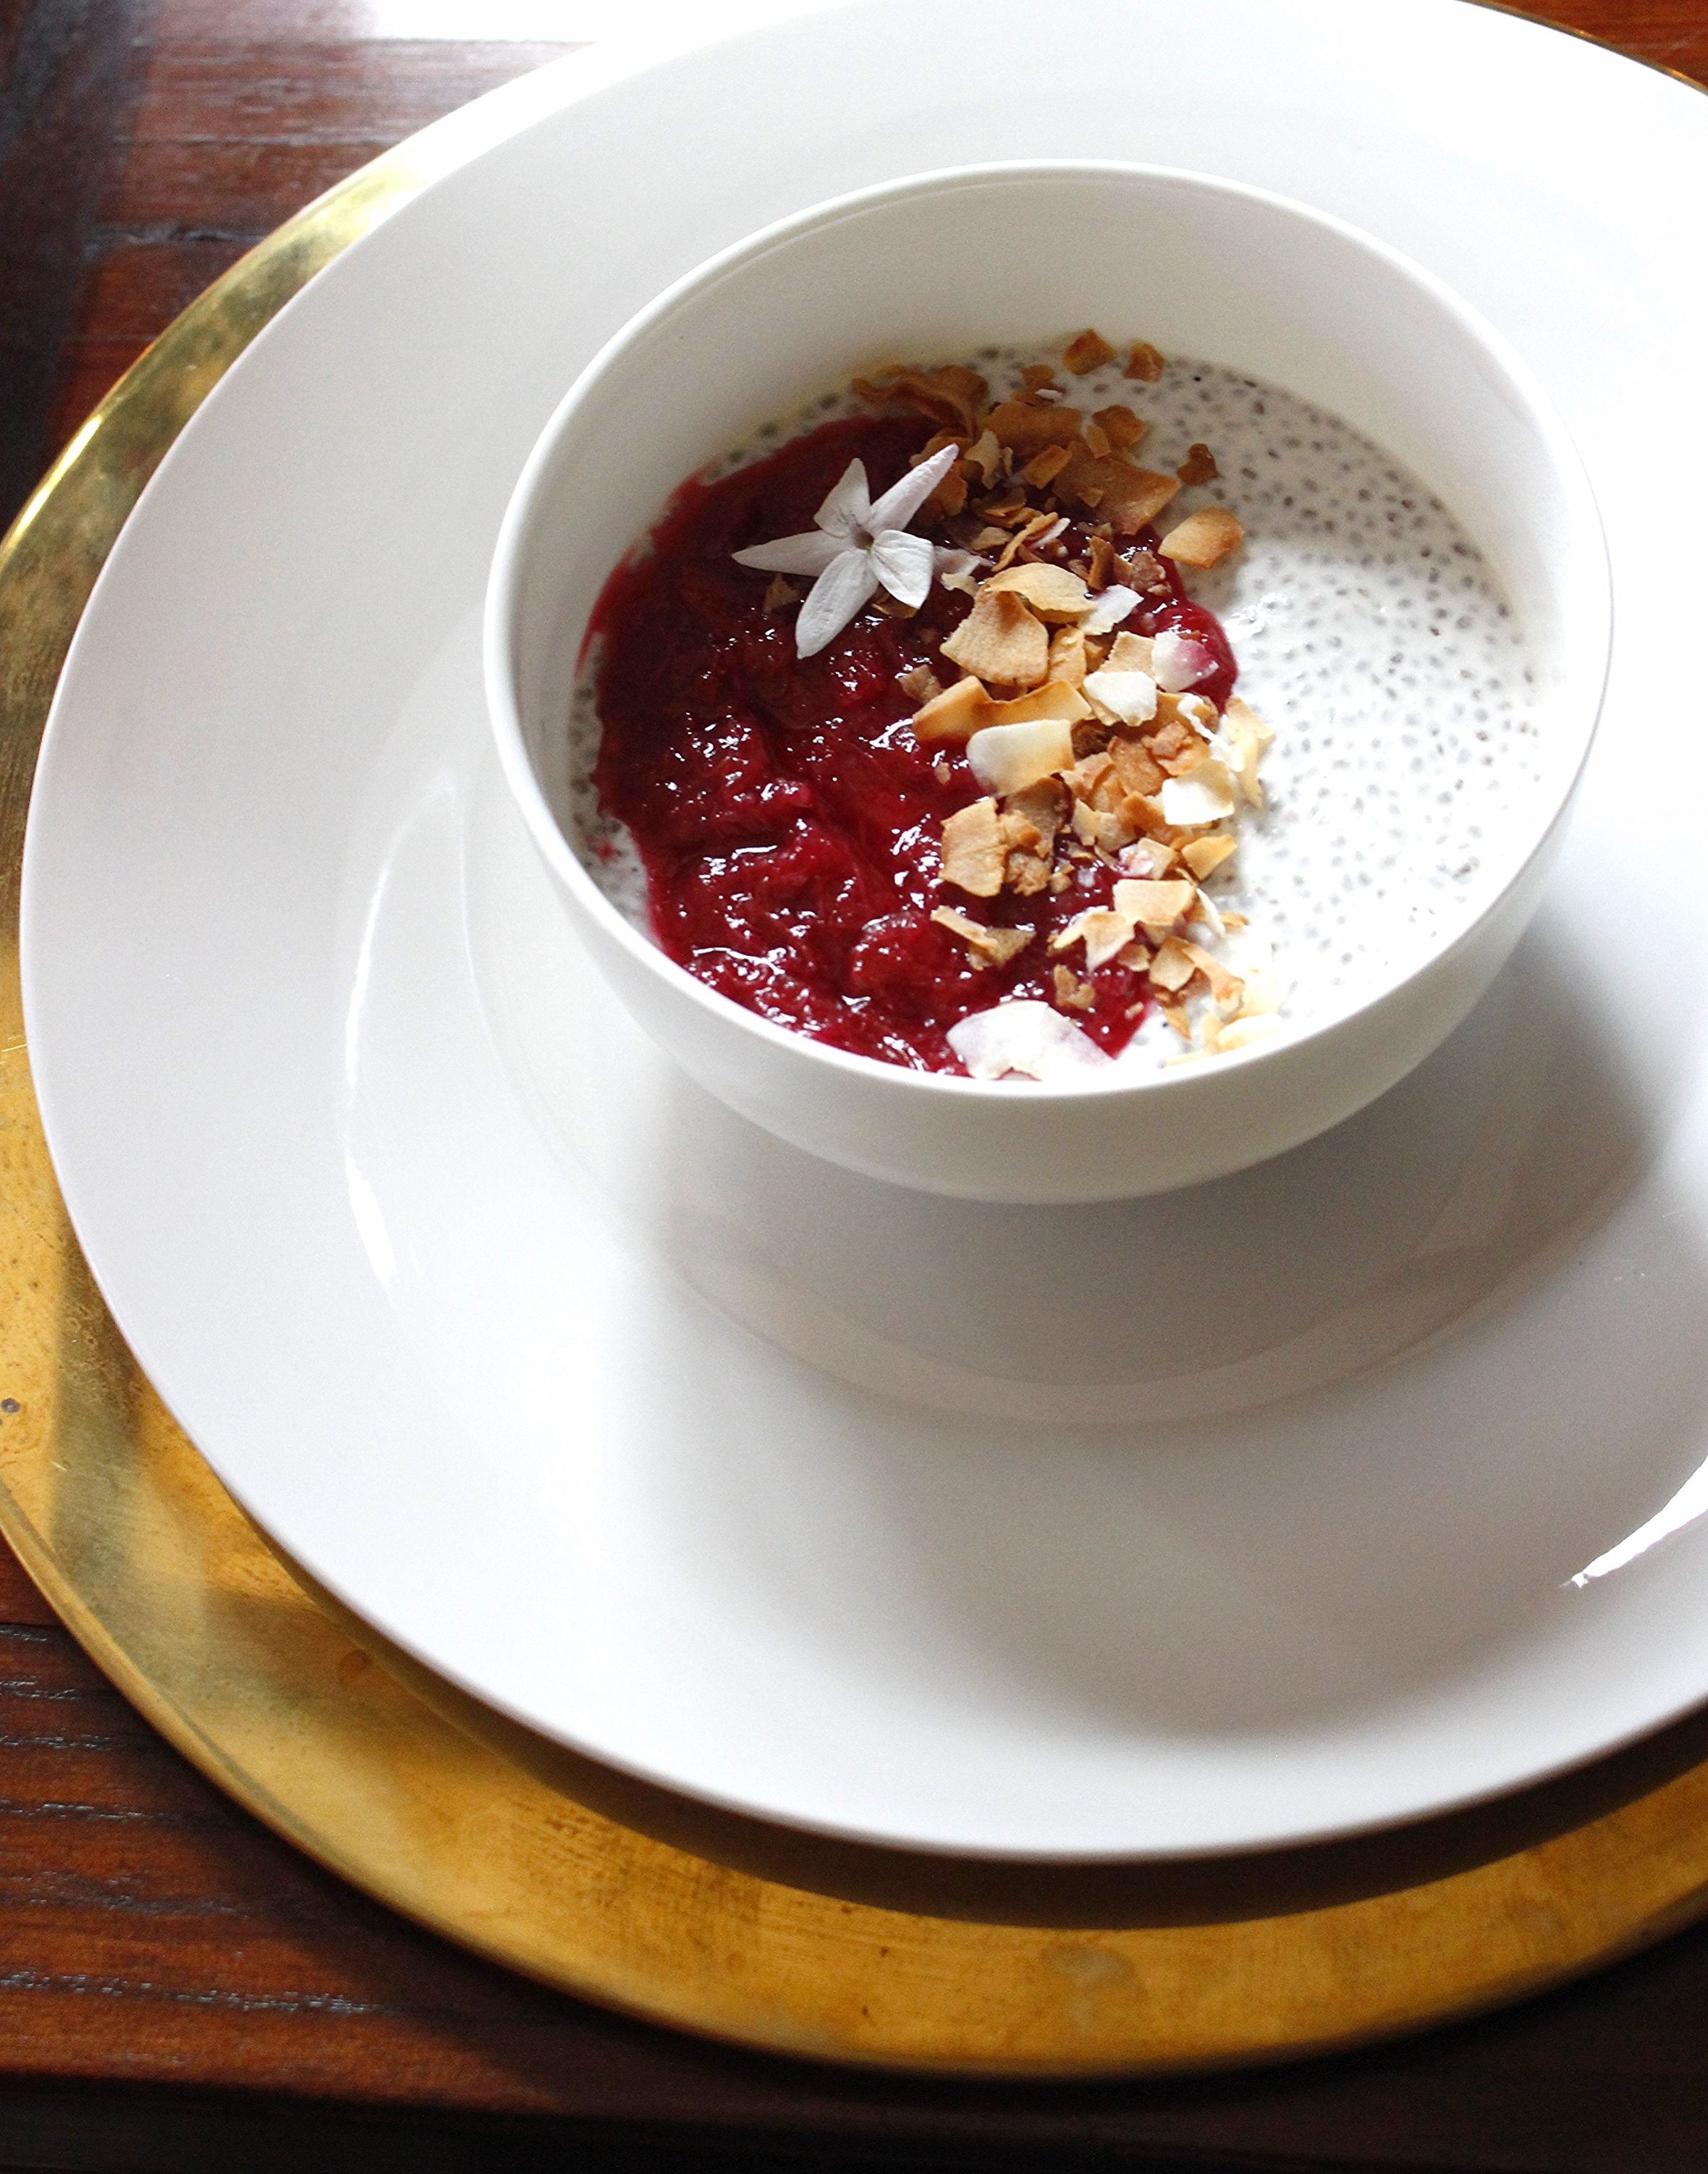 Coconut Chia Pudding with Hibiscus Rhubarb Compote.